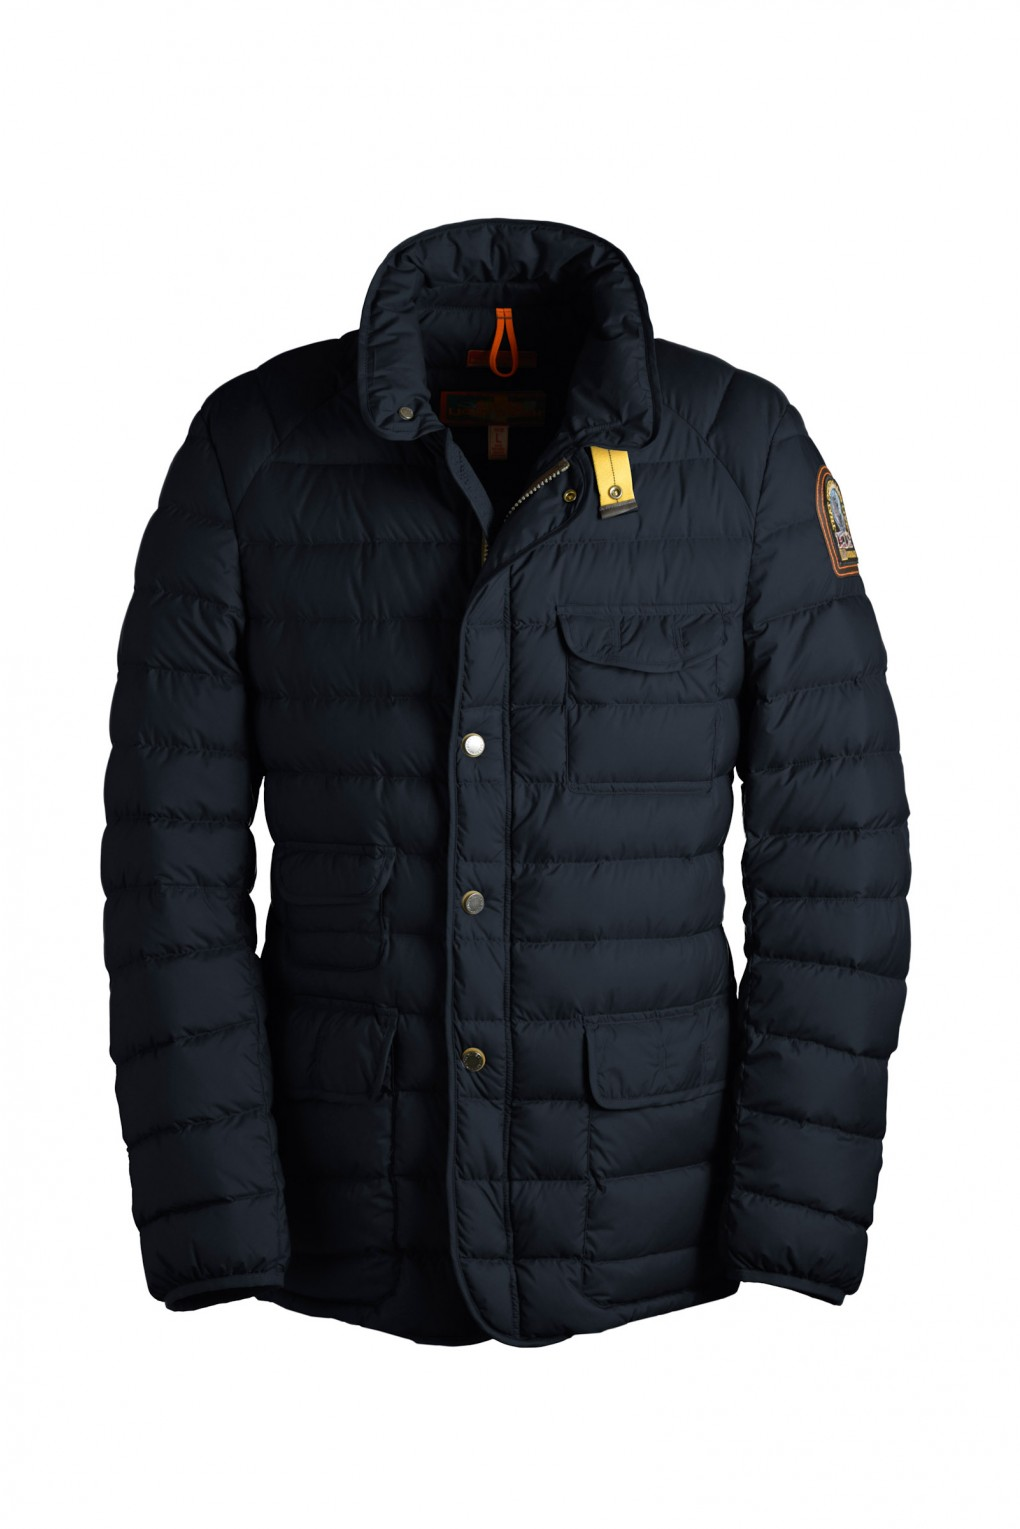 parajumpers ORSO man outerwear Blue Black